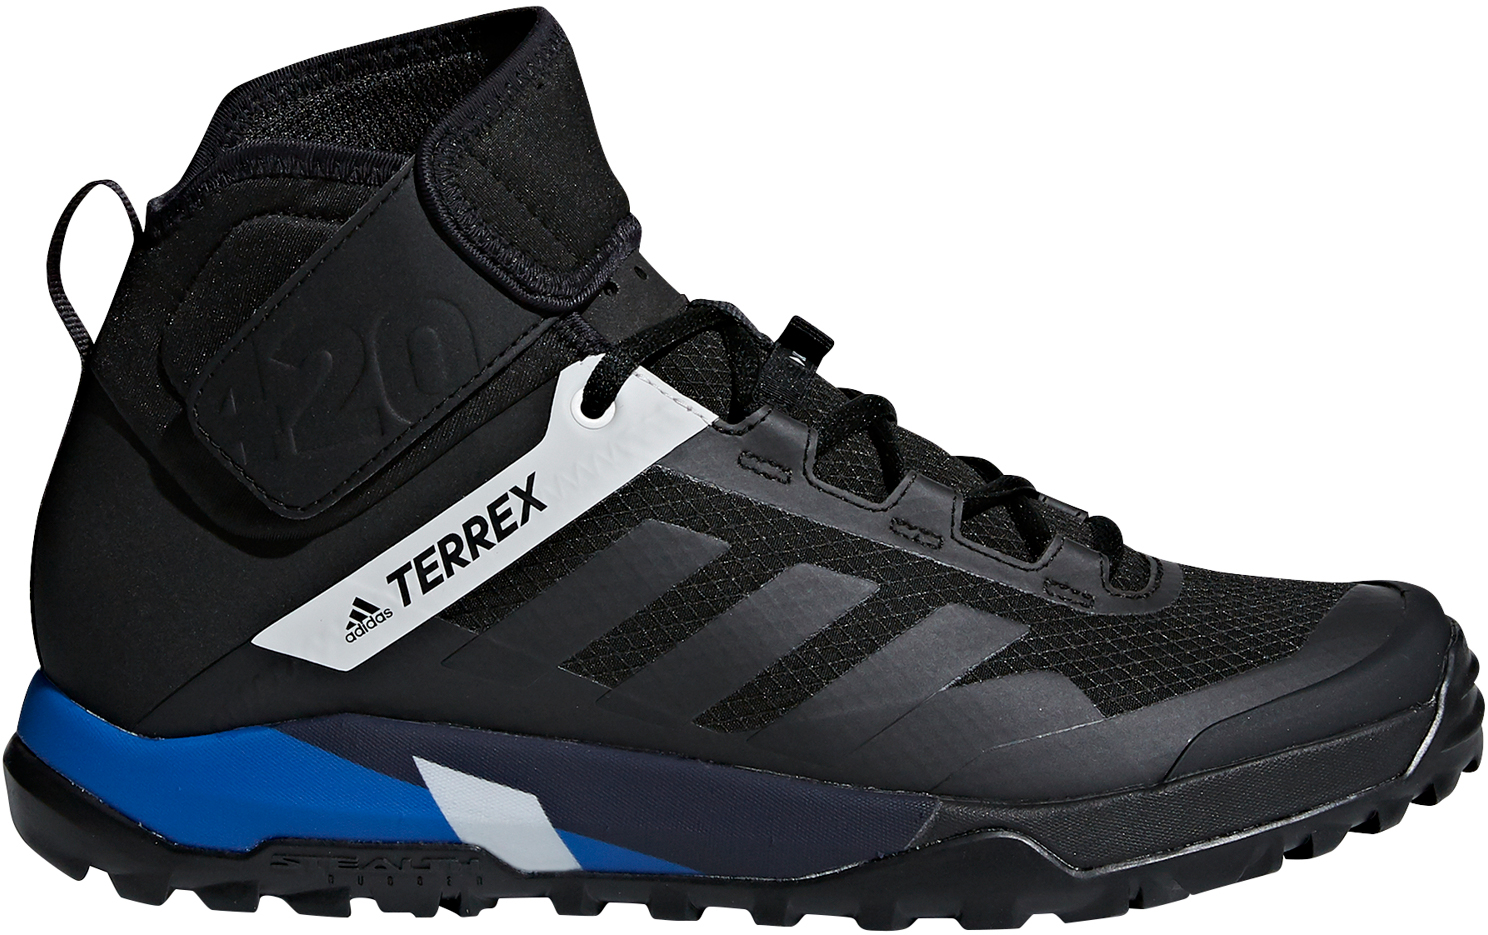 Wiggle adidas Terrex Trail Cross Protect Boots Cycling Chaussures